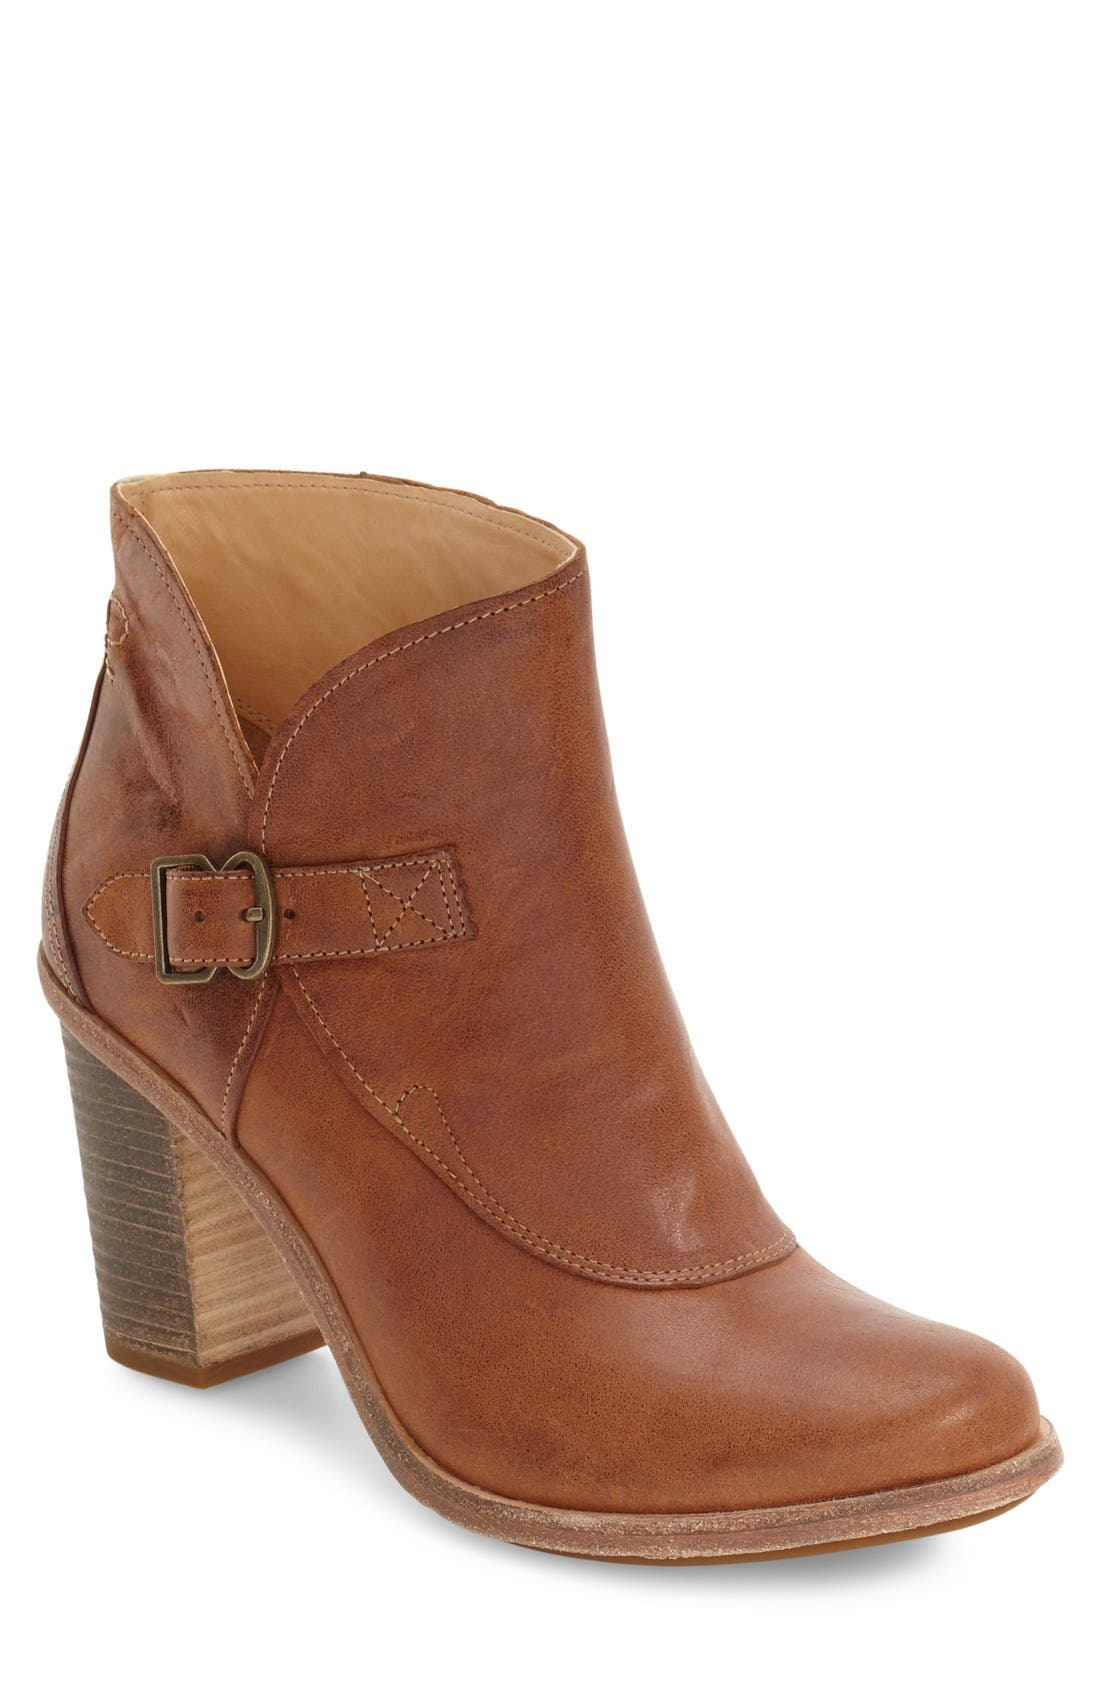 Alternate Image 1 Selected - Timberland 'Marge' Bootie (Women)